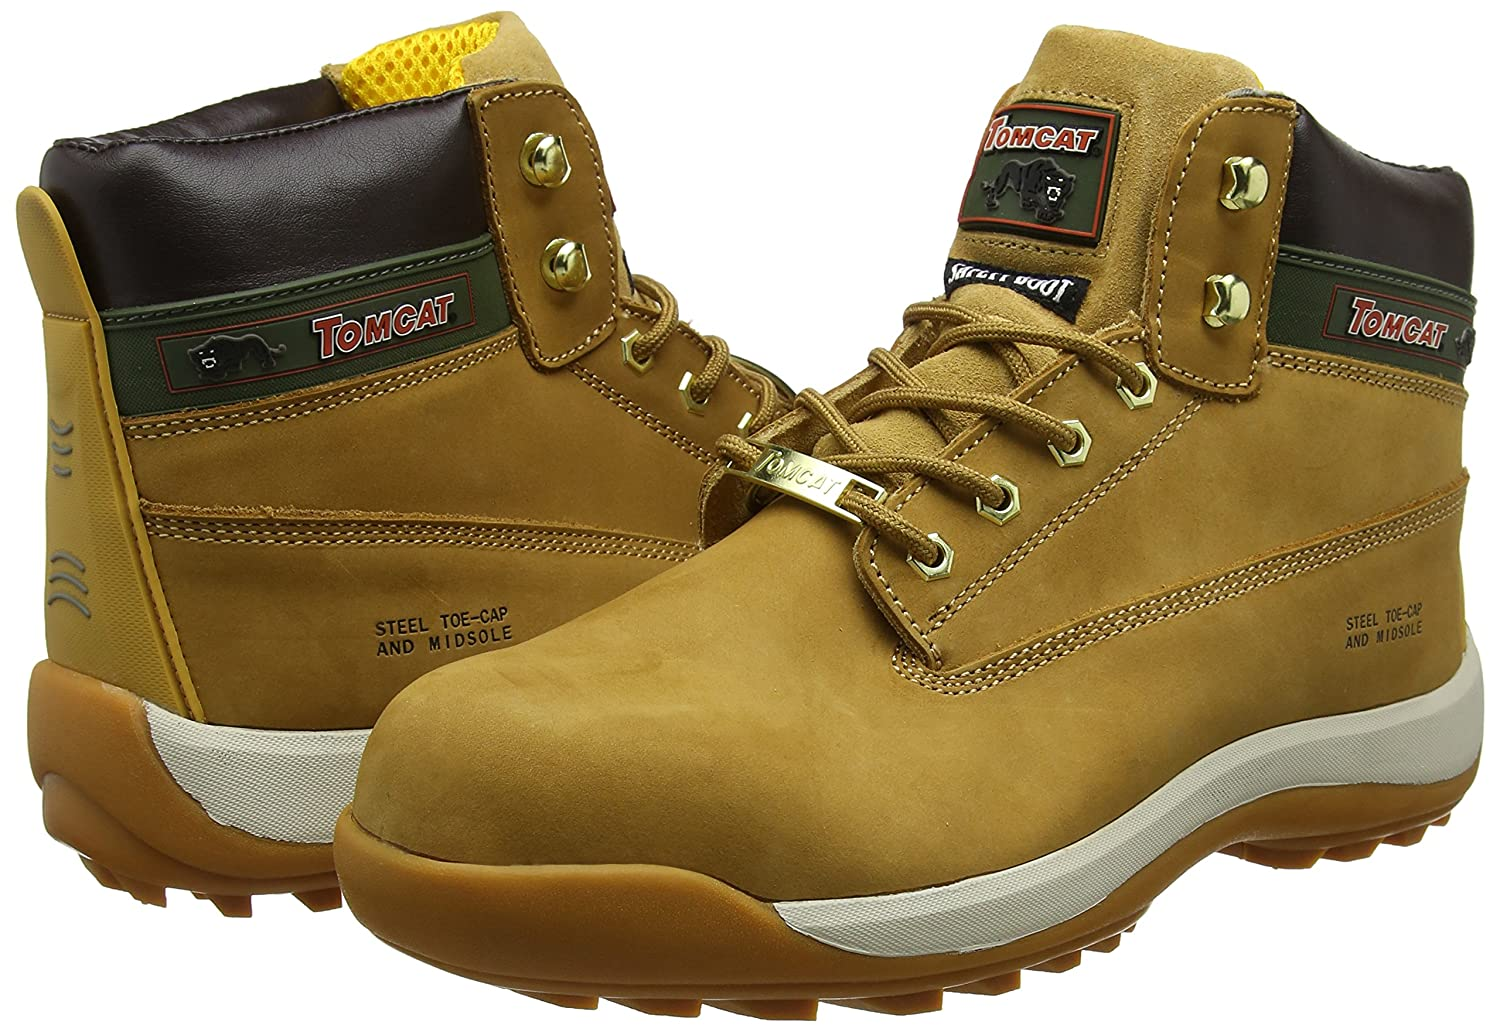 Rock Fall Pro Man Orlando Tc35c S3 Honey Nubuck Steel Toe Cap Work Safety Boots Men's Shoes Boots